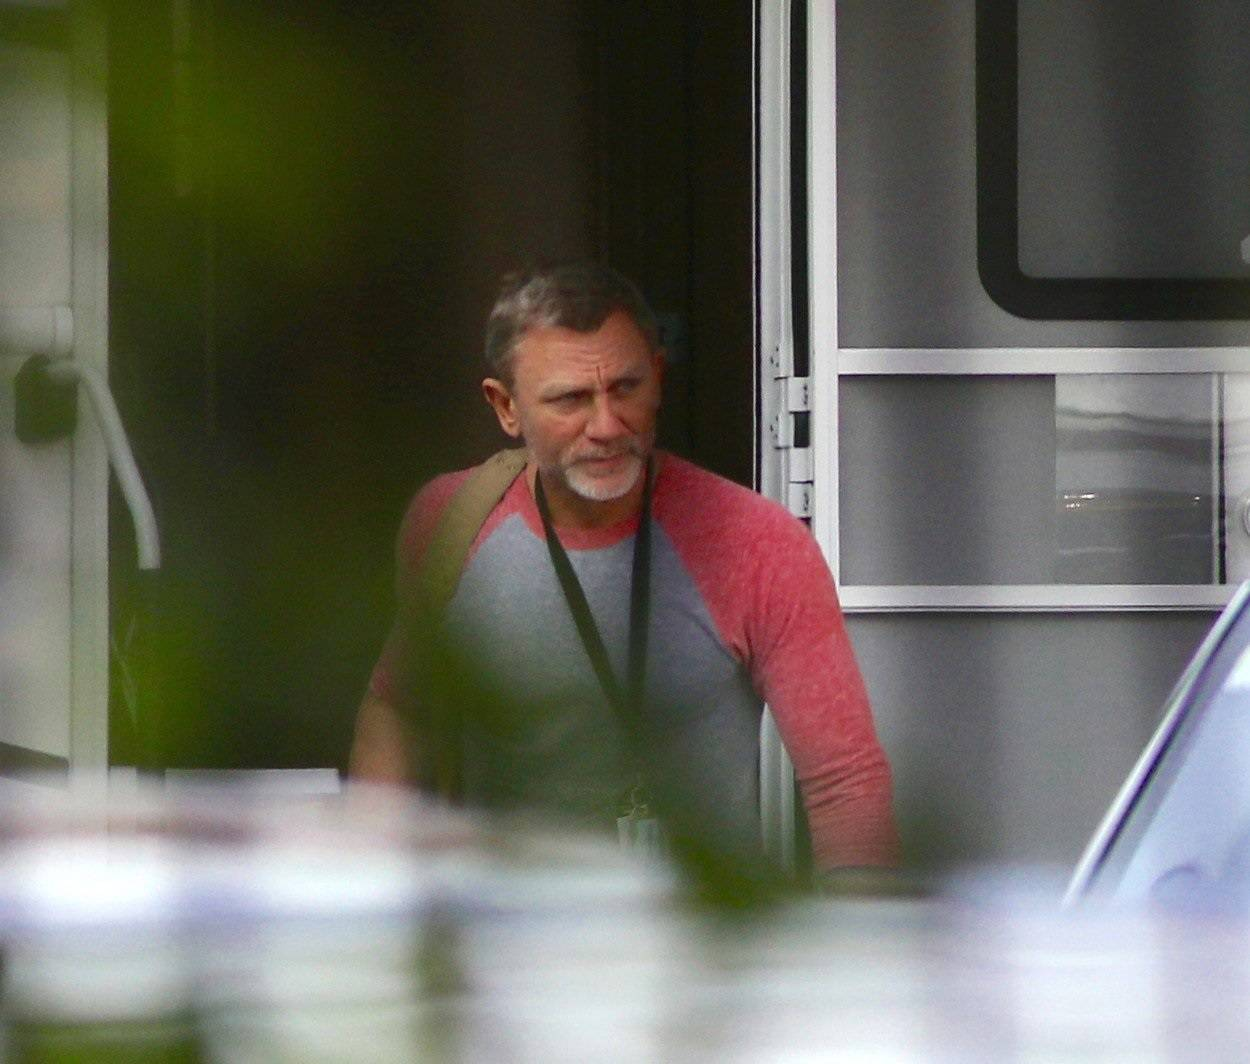 EXCLUSIVE: Daniel Craig seen at Pinewood studios after filming of the new James Bond film was stopped due to him injuring himself